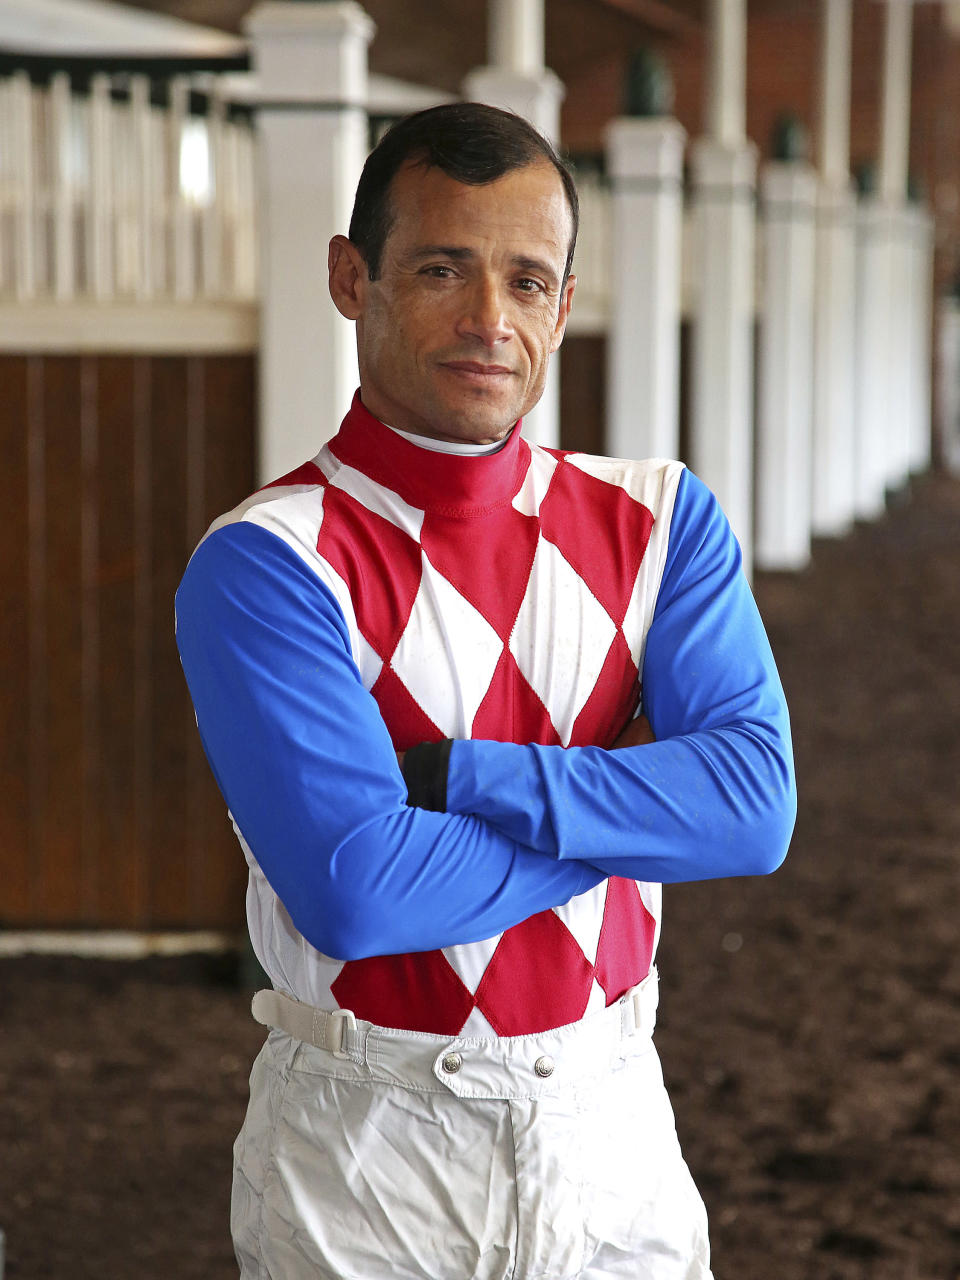 This photo provided by Equi-Photo shows jockey Jose Ferrer posed at Monmouth Park in Oceanport, N.J., Tuesday, June 15, 2021. Just look around the world of sports and athletes are winning events at older ages. Phil Mickelson won the PGA earlier this year at almost 51, and Tom Brady won another Super Bowl _ with the Tampa Bay Buccaneers this time _ at more than 43 in February. Jockey Jose Ferrer isn't doing anything as grandiose. He's just leading all jockeys in wins at Monmouth Park in New Jersey after 10 days of racing with 16 wins in 56 mounts. (Bill Denver/Equi-Photo via AP)